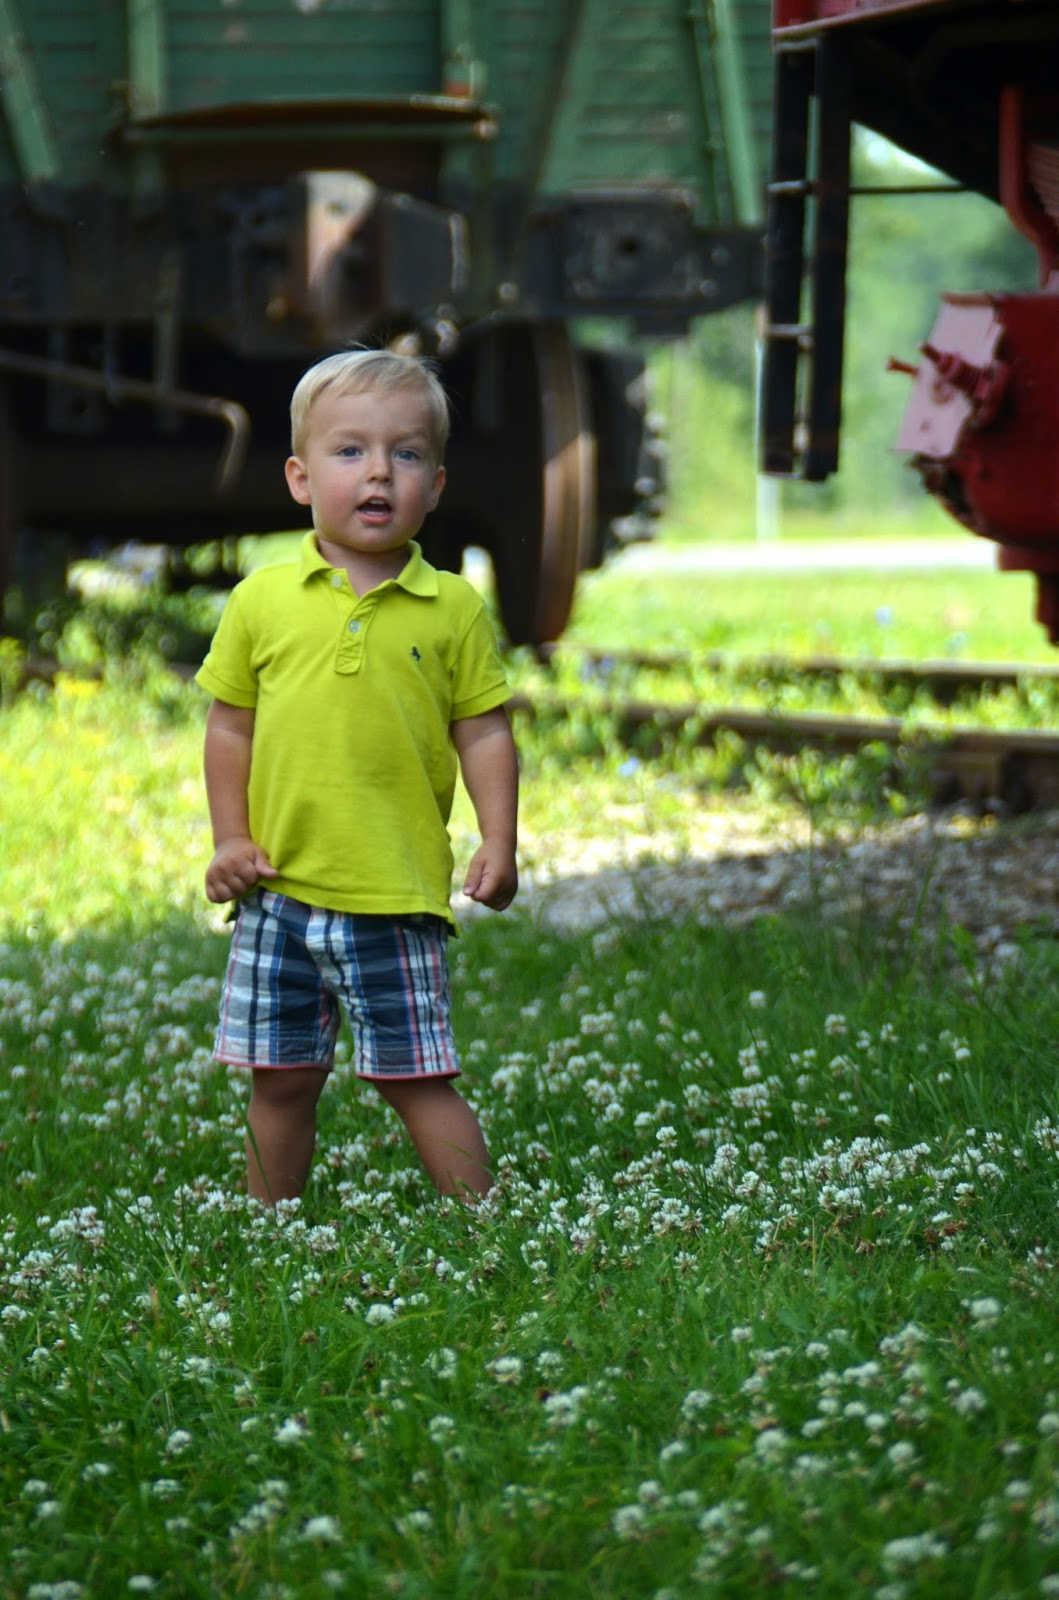 blond toddler lime green polo